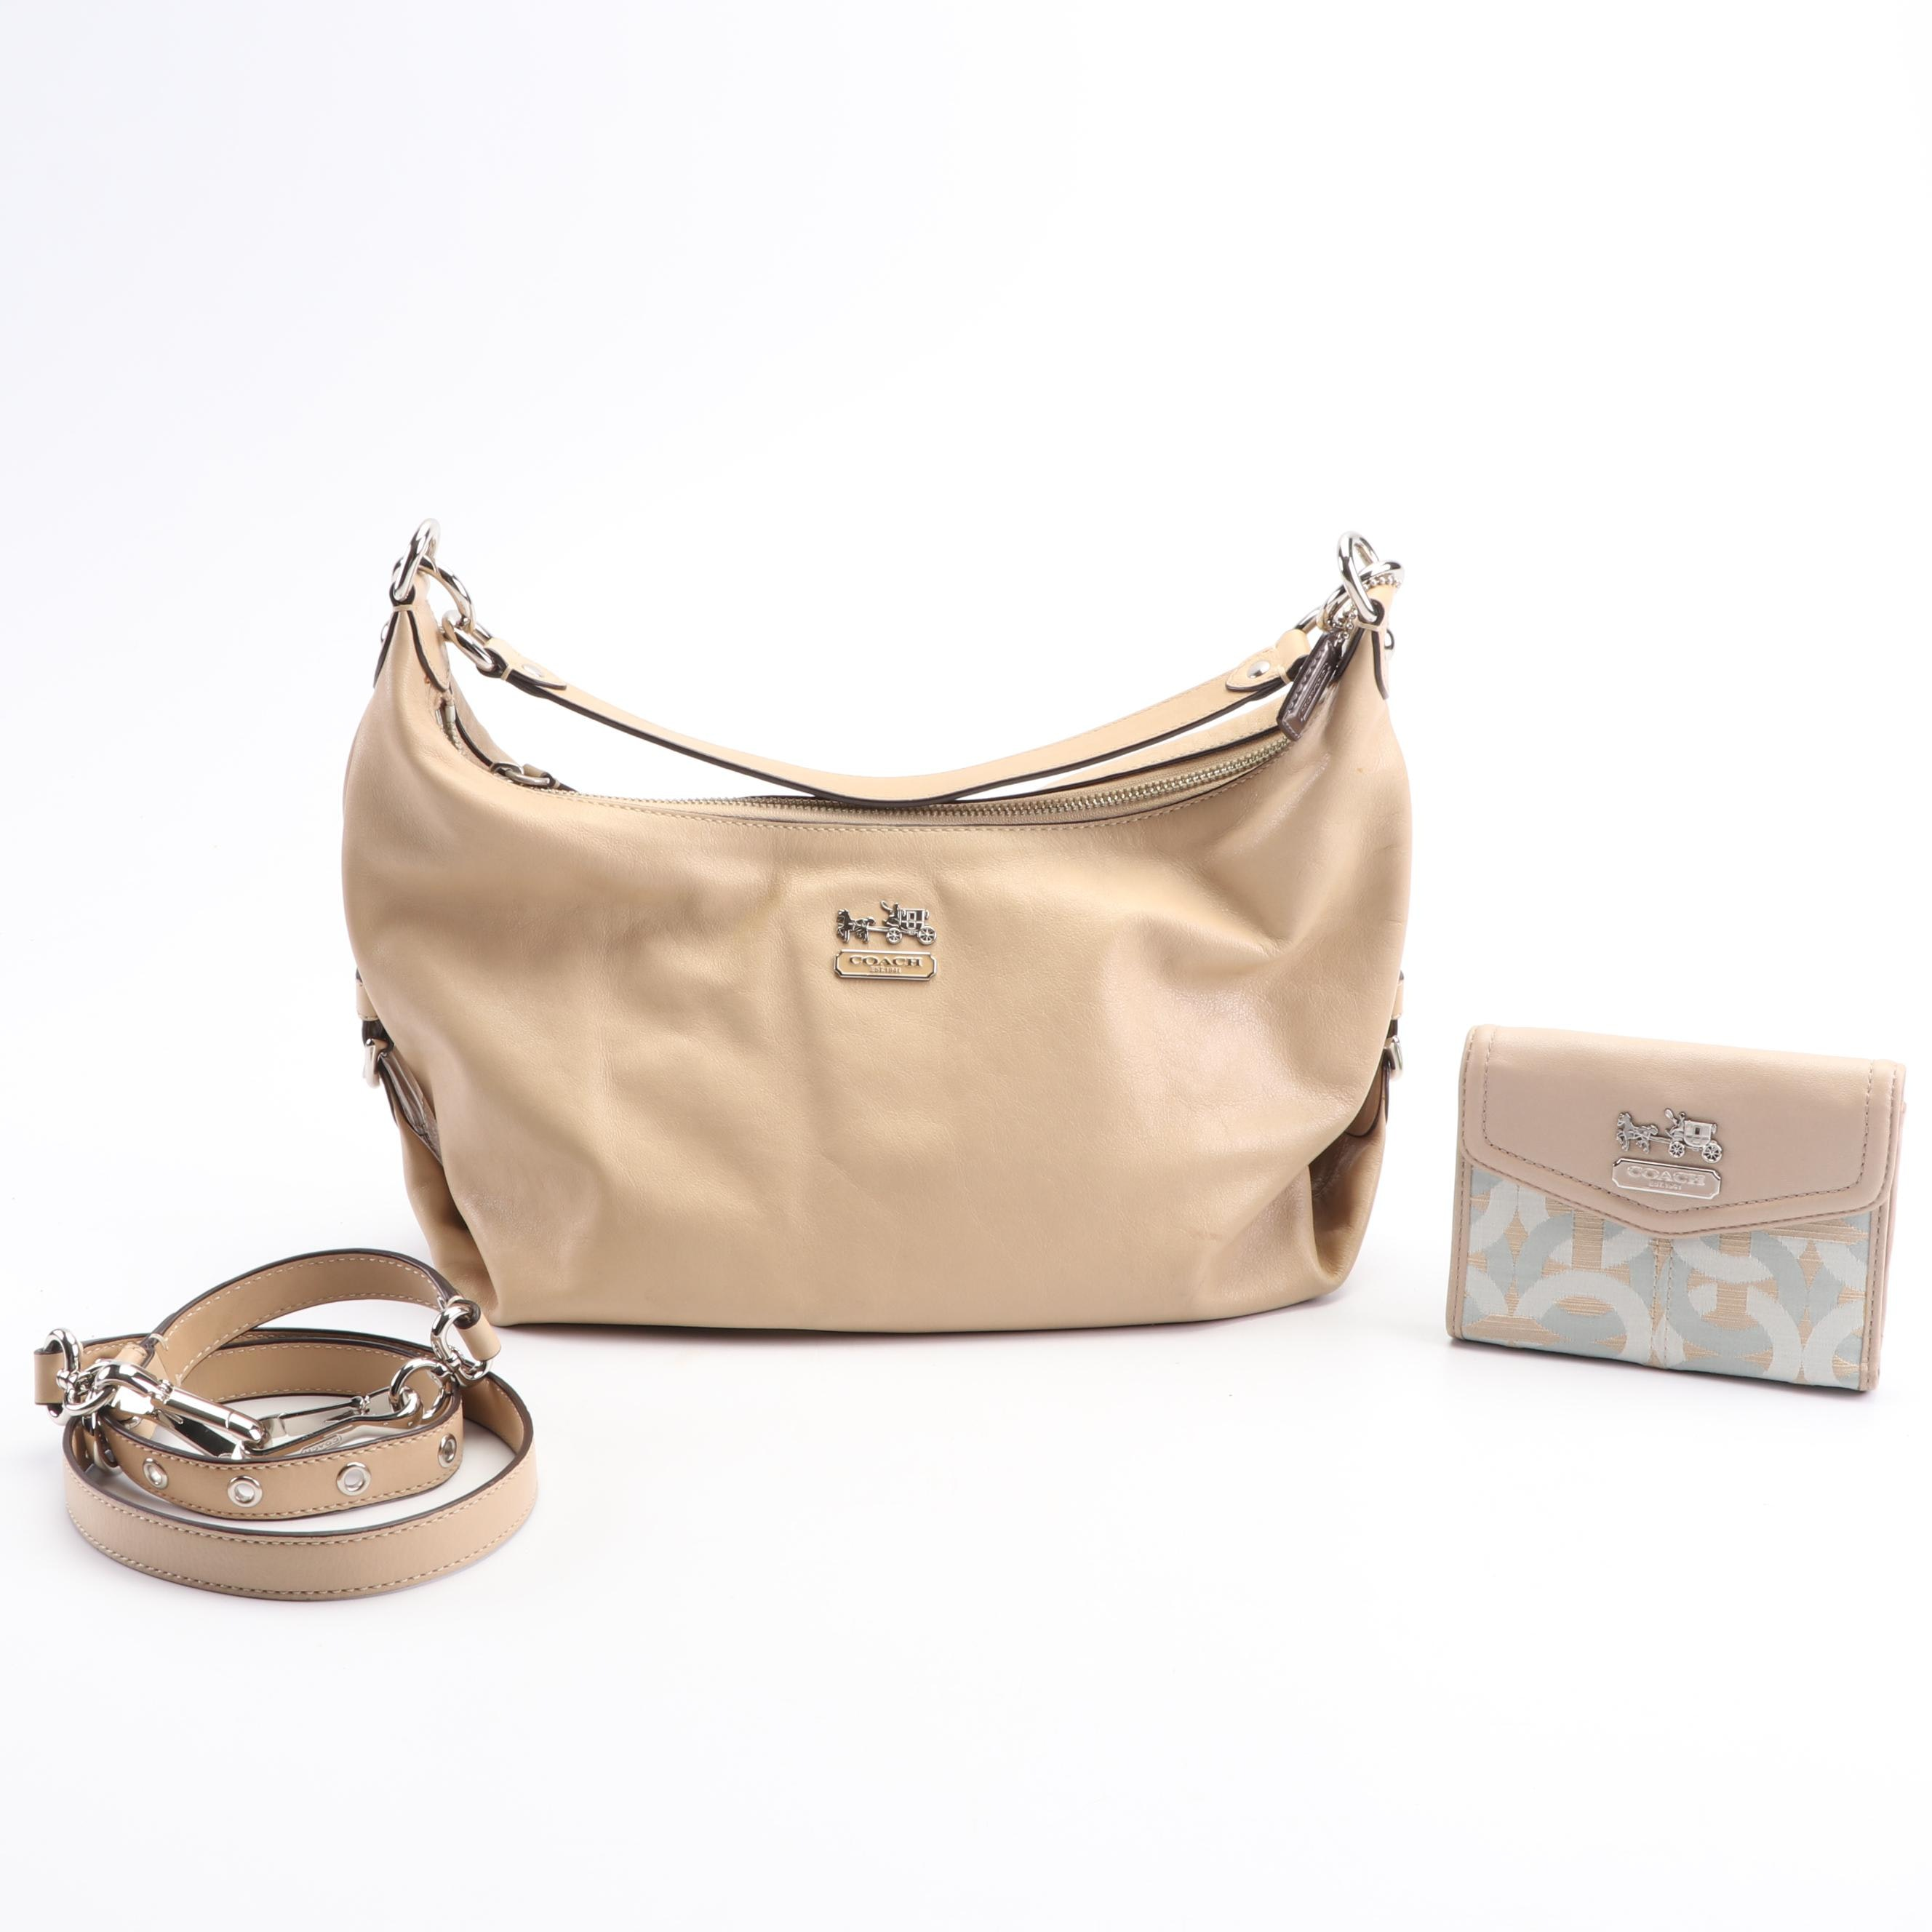 Coach Tan Madison Hailey Hobo Leather Bag and Coach Canvas and Leather Wallet